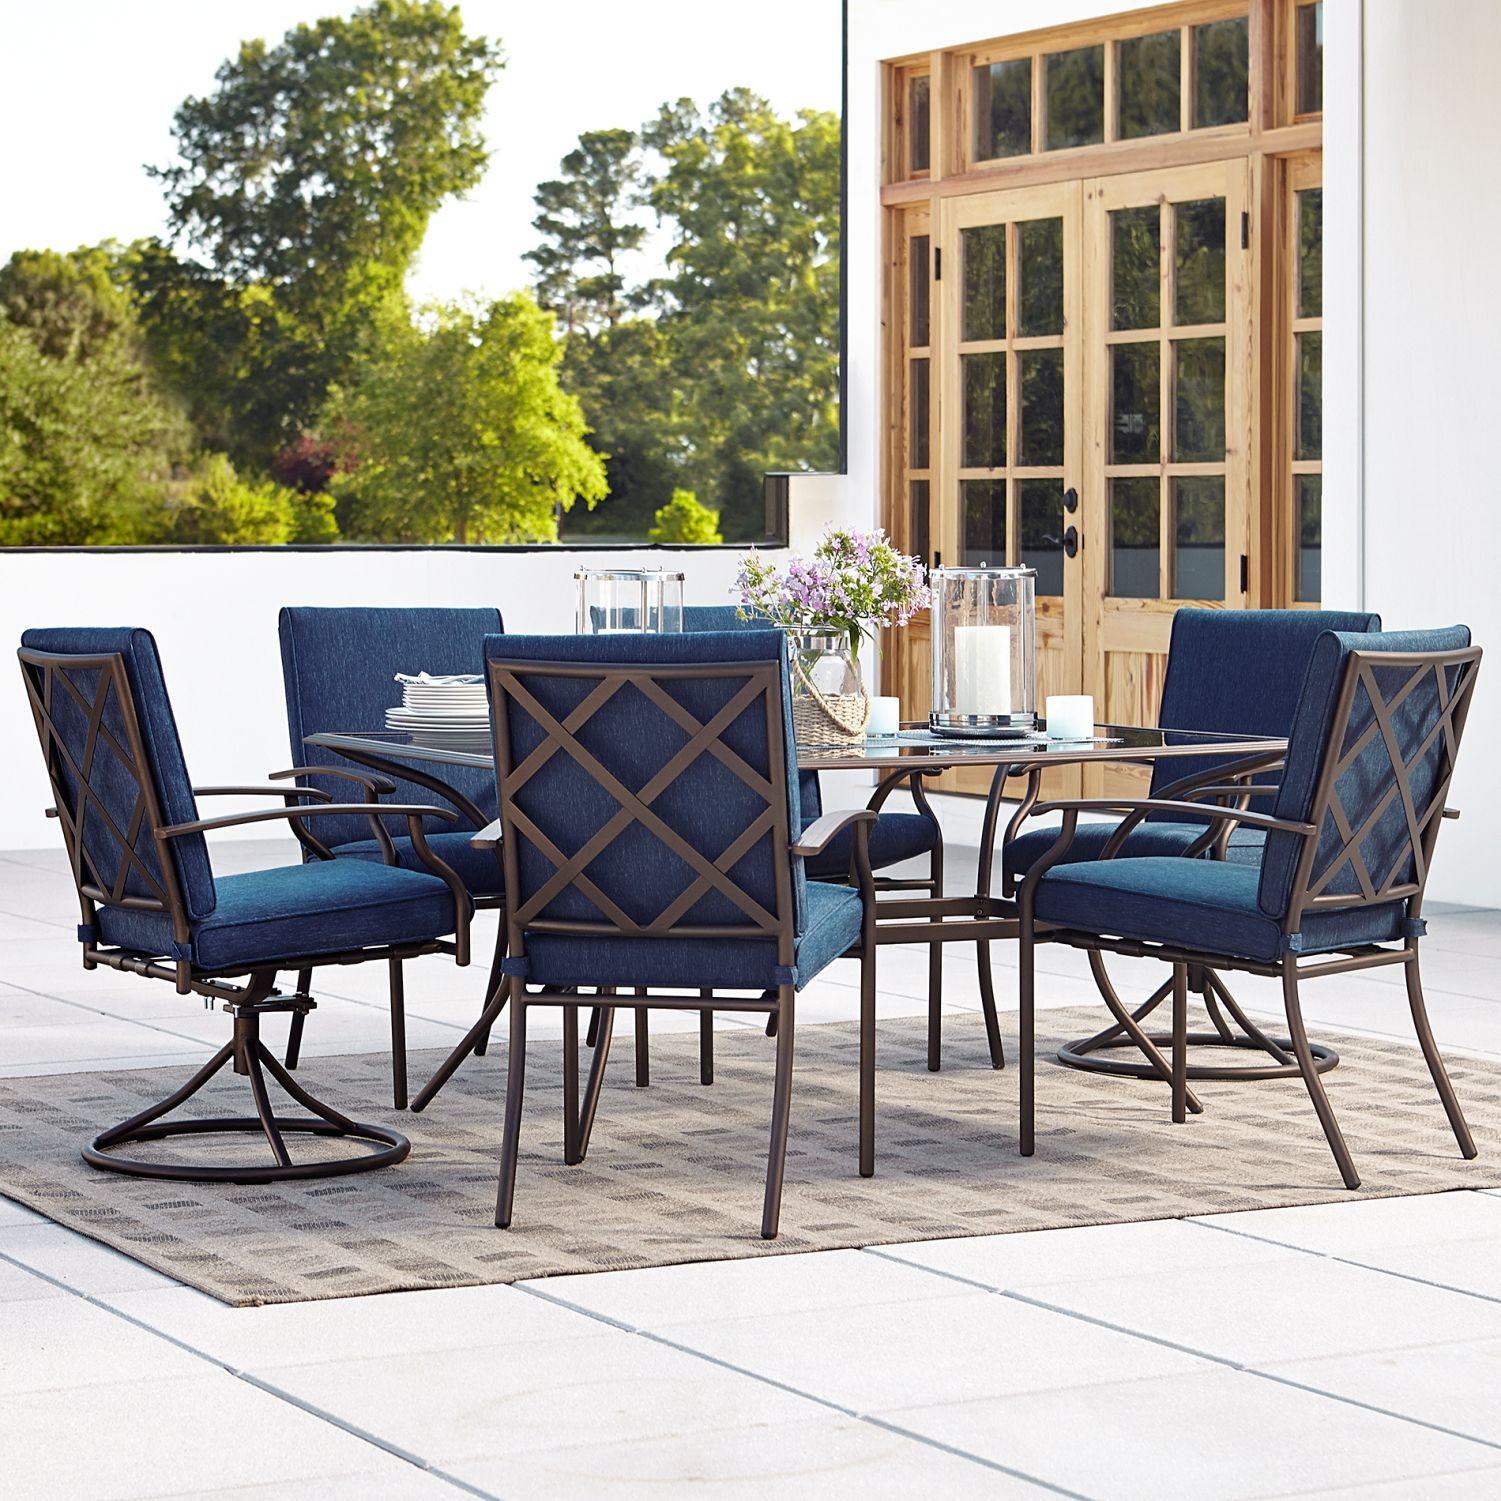 2017 Best Outdoor Dining Room Furniture Variety To Add Charm And Style Patio Furniture Dining Set Blue Patio Furniture Outdoor Furniture Design